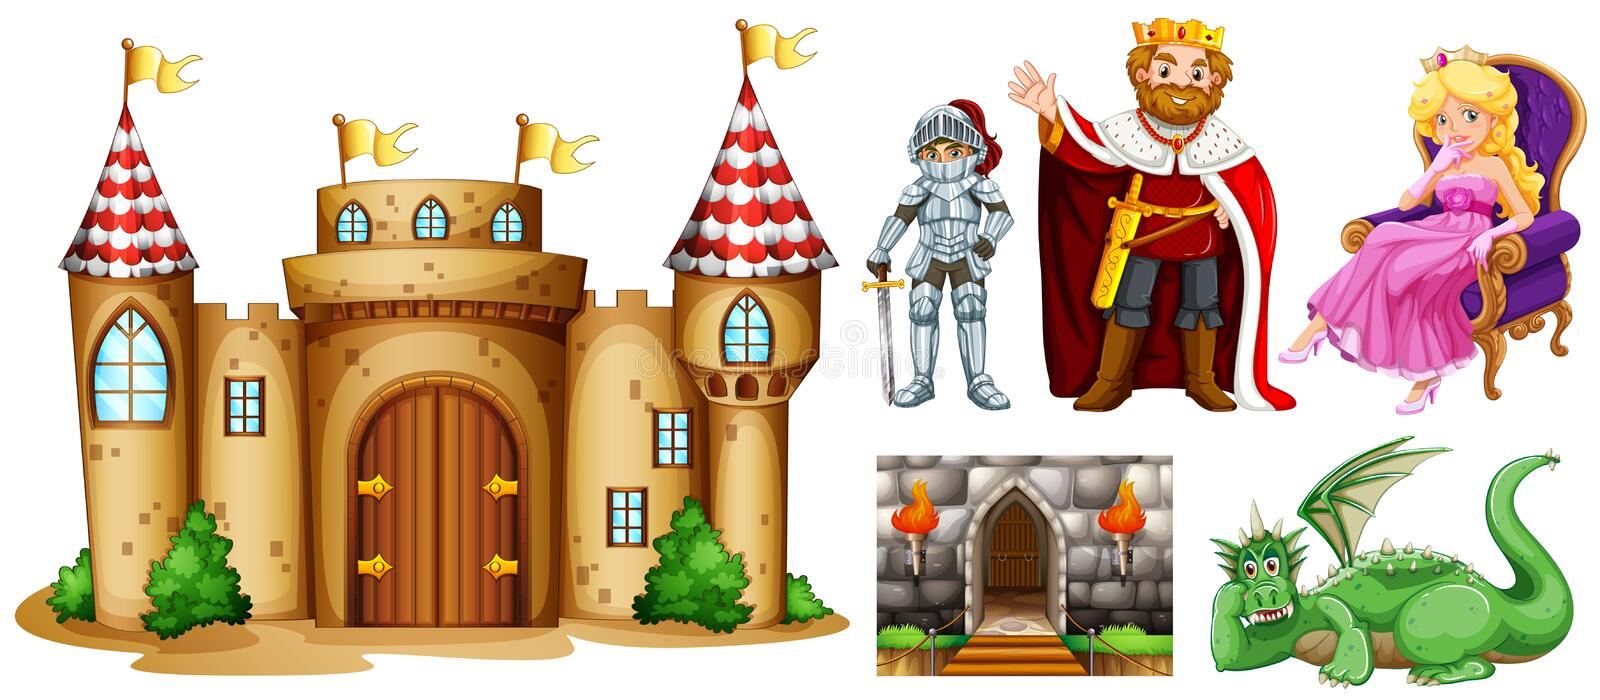 Fairytale characters and palace building royalty free illustration